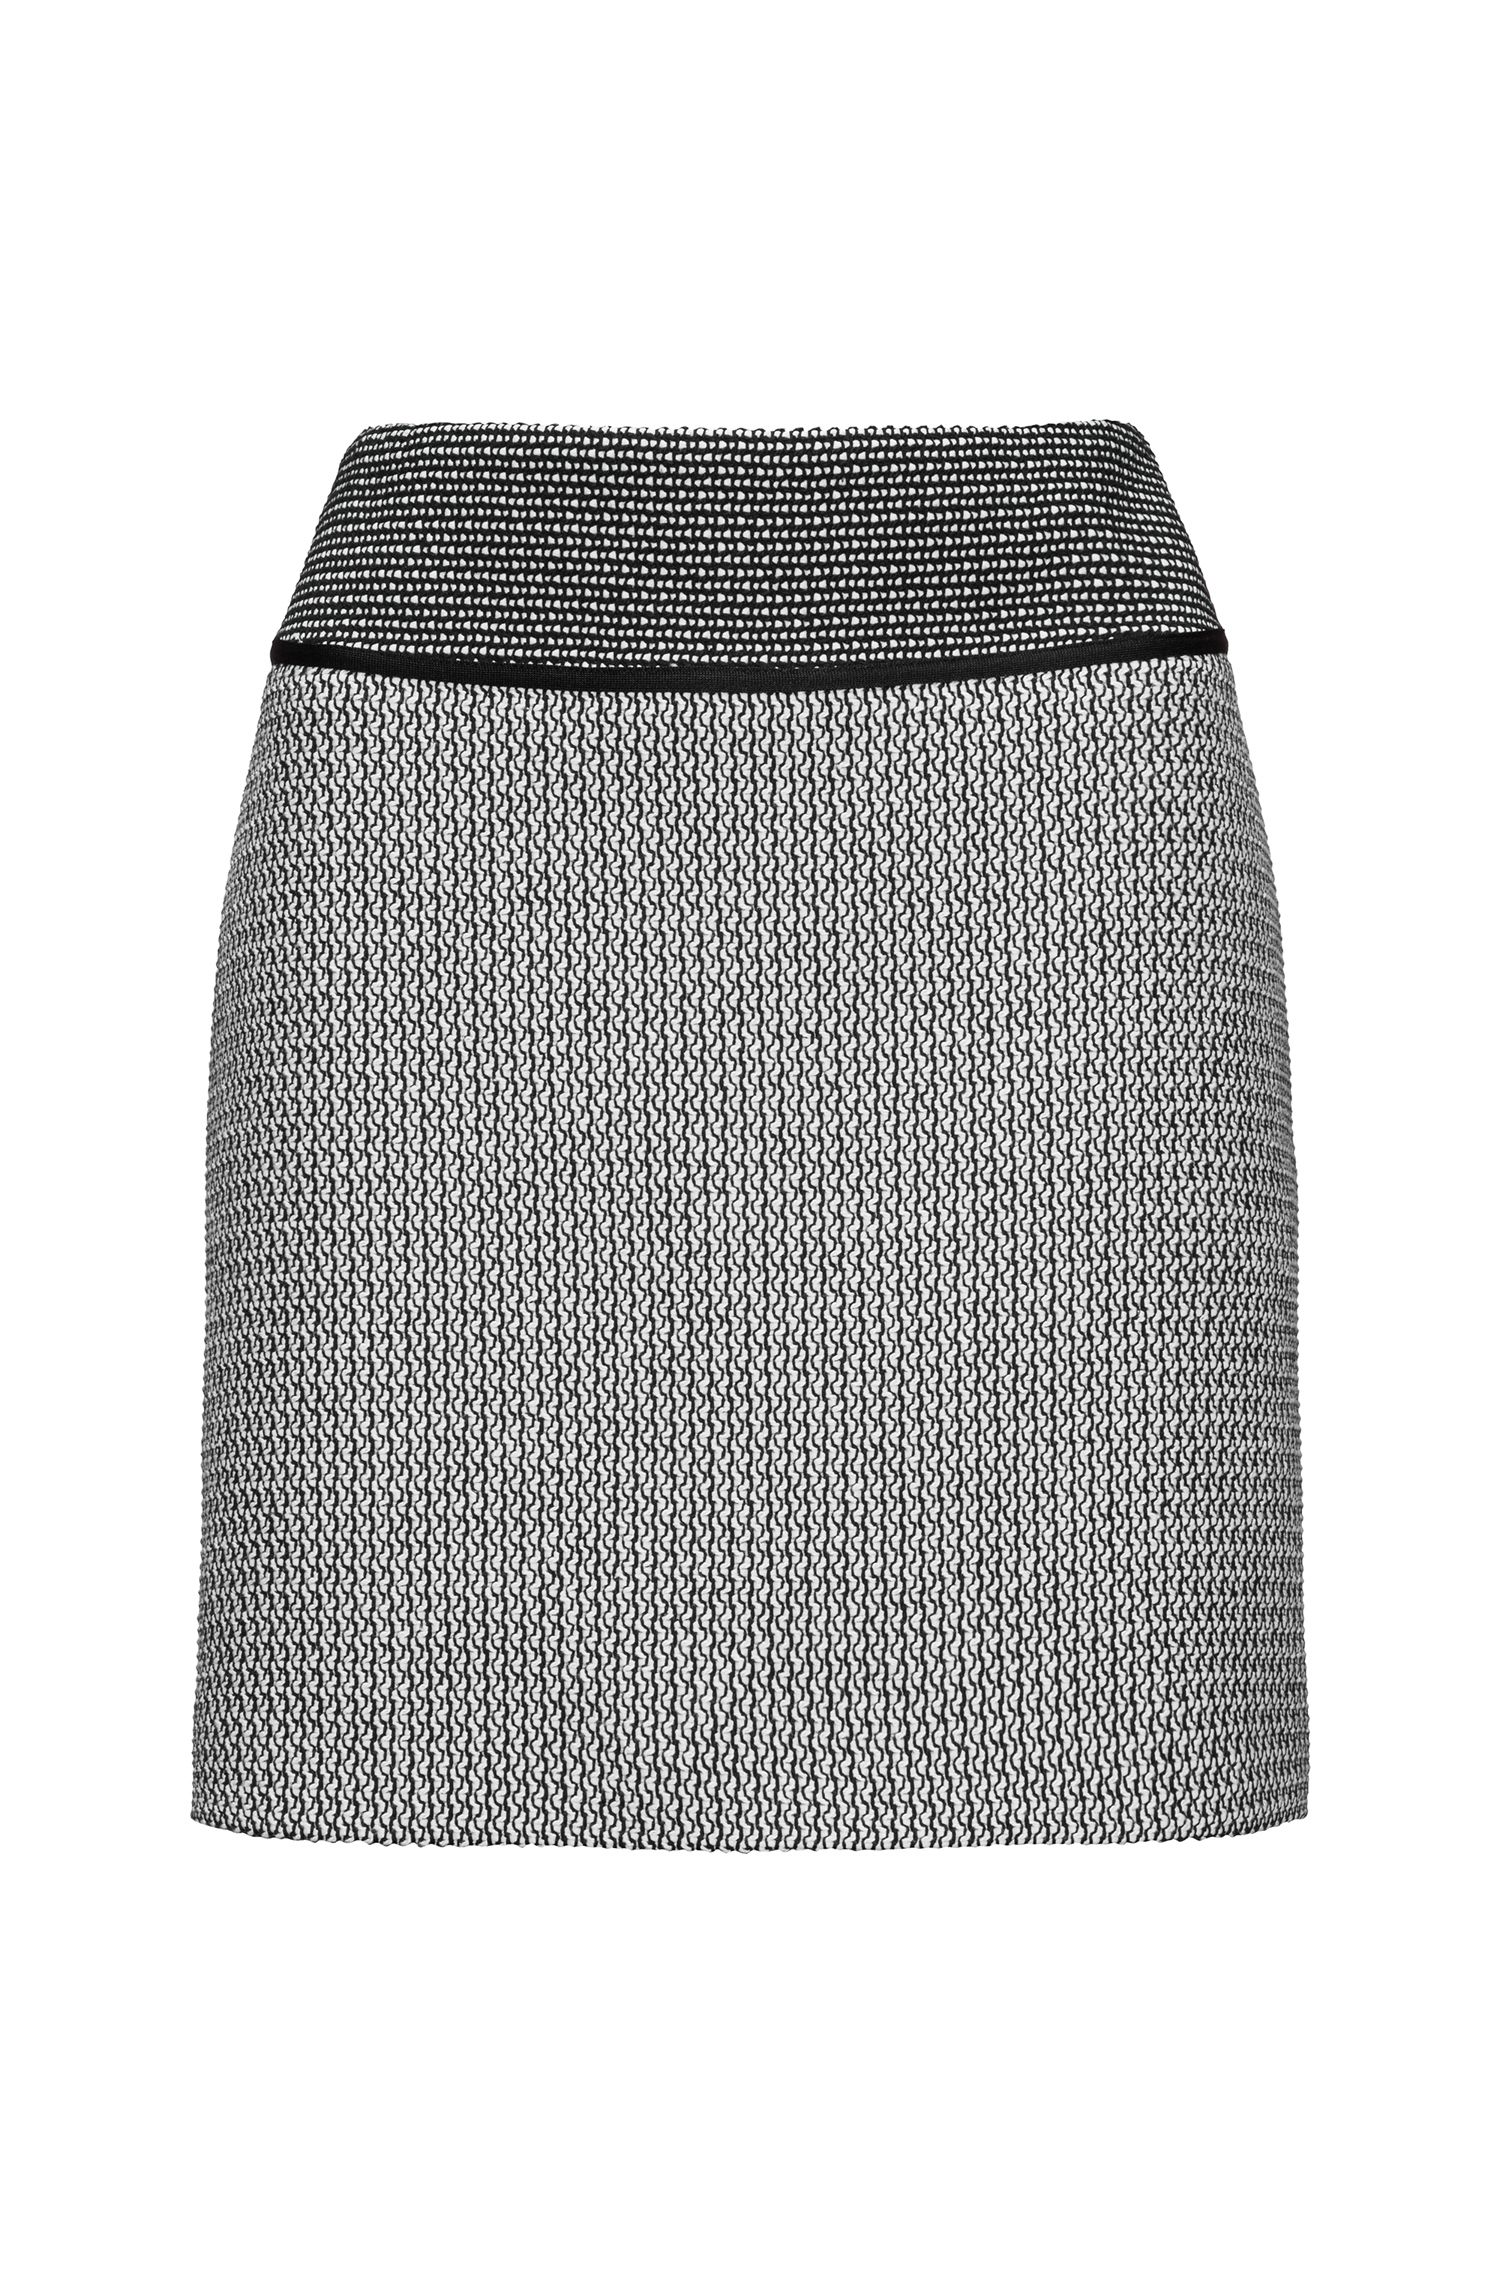 Mini skirt in patched patterns